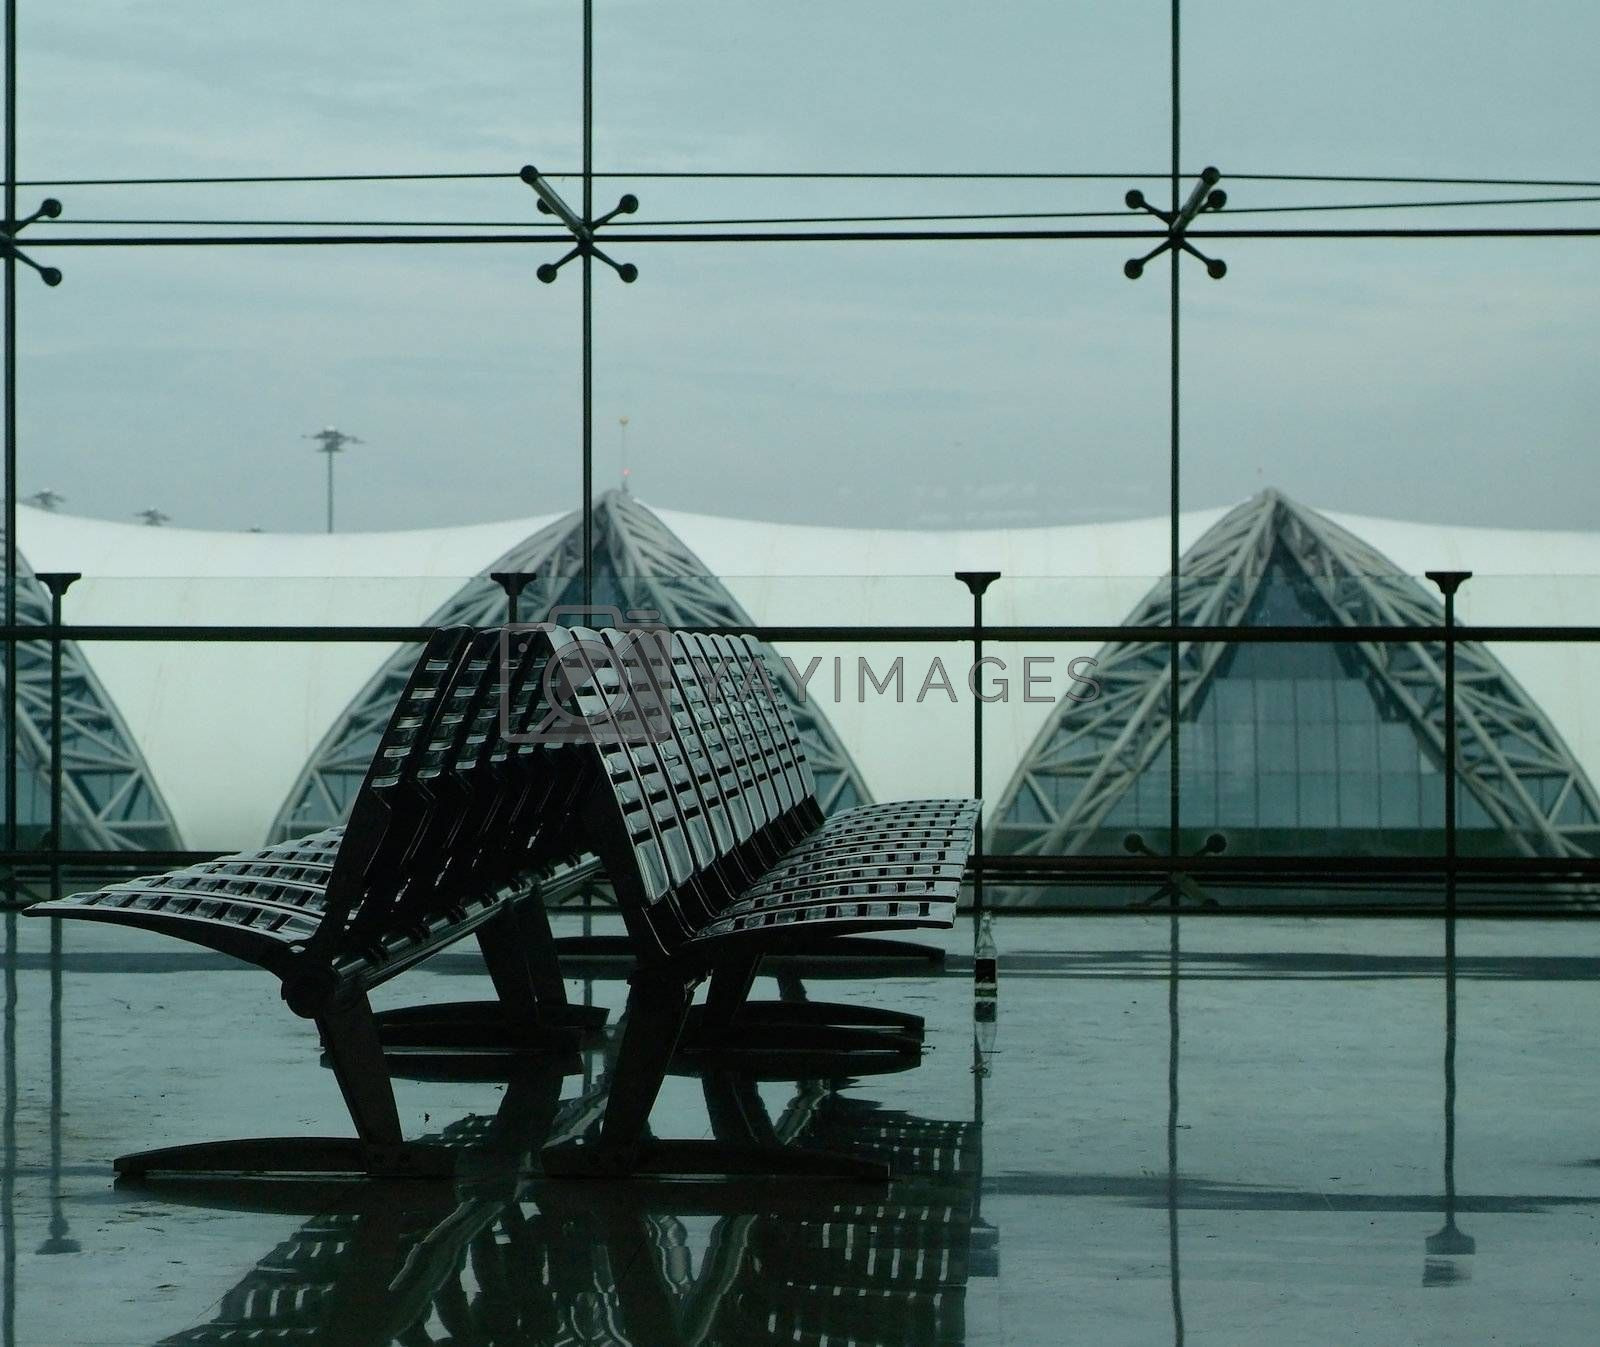 Seats at an airport terminal by epixx